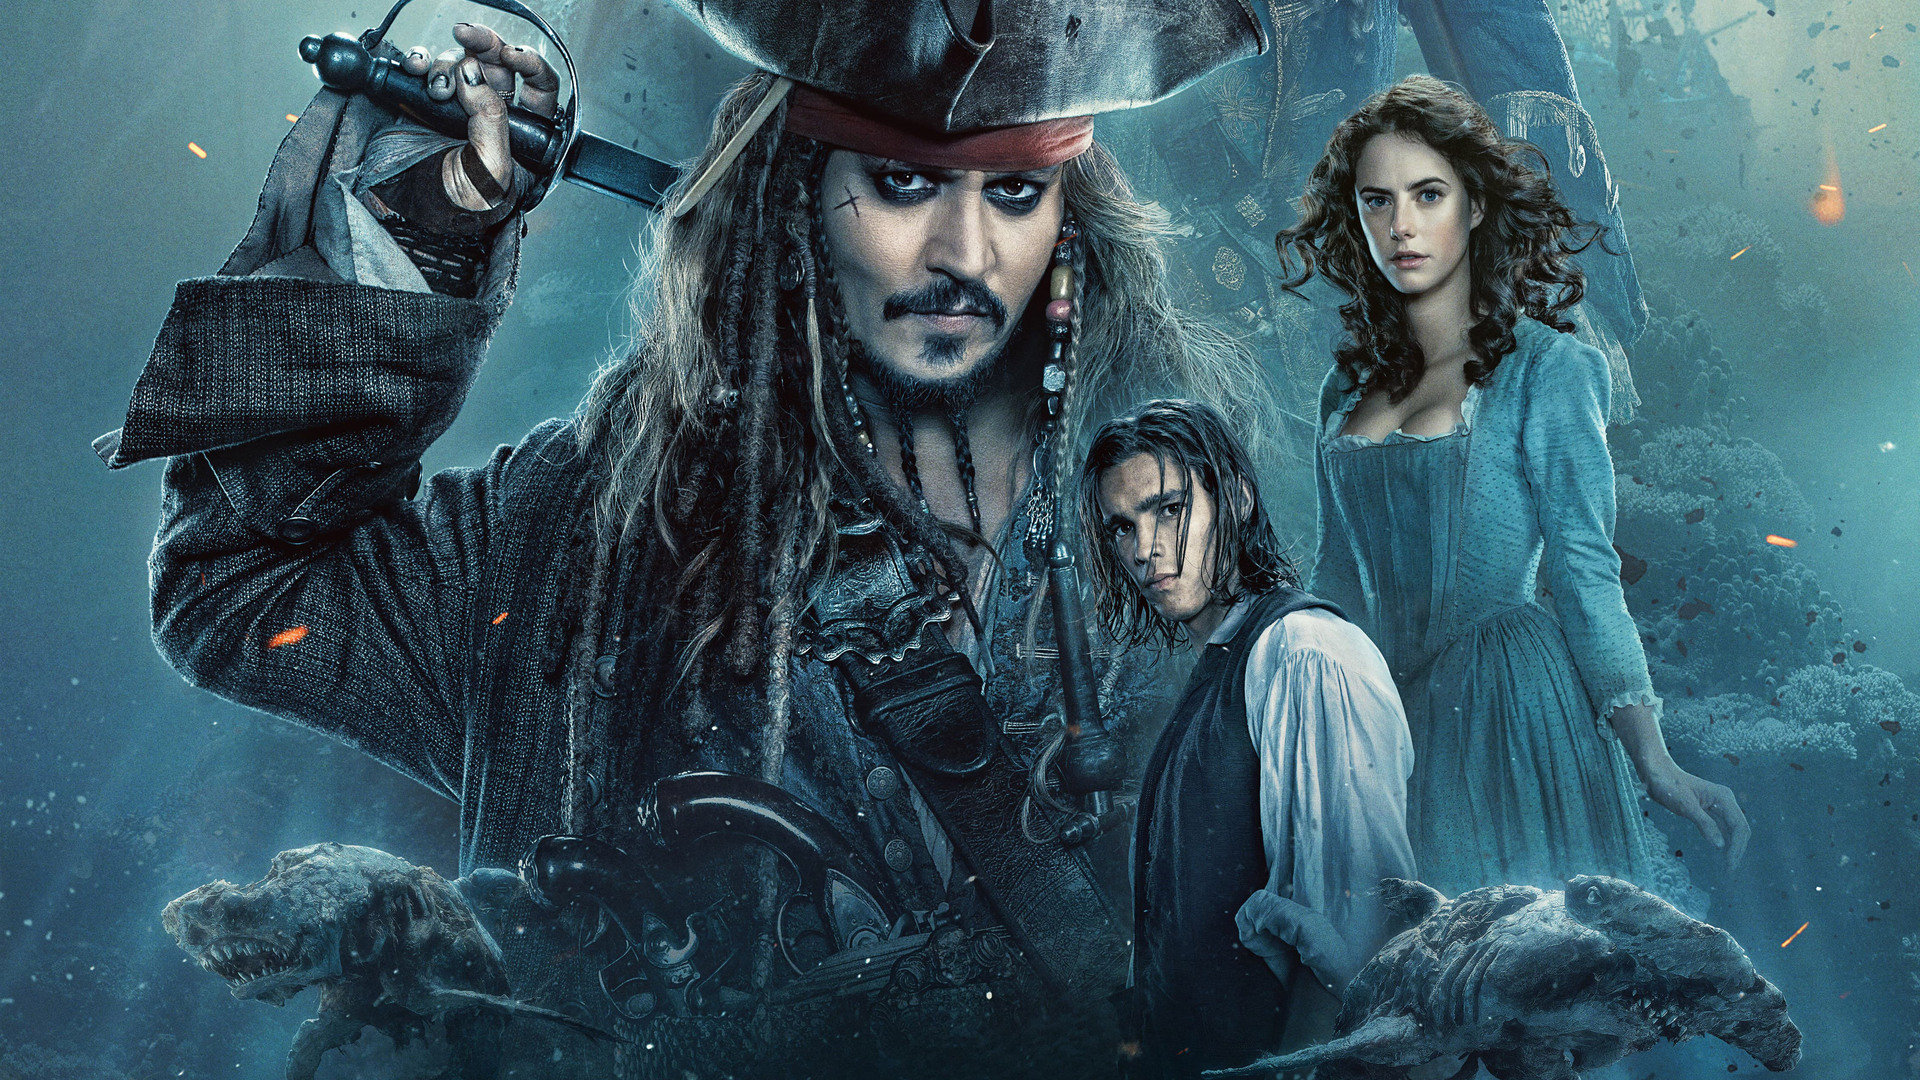 1920x1080 2017 pirates of the caribbean dead men tell no tales movie laptop full hd 1080p hd 4k - Pirates of the caribbean images hd ...